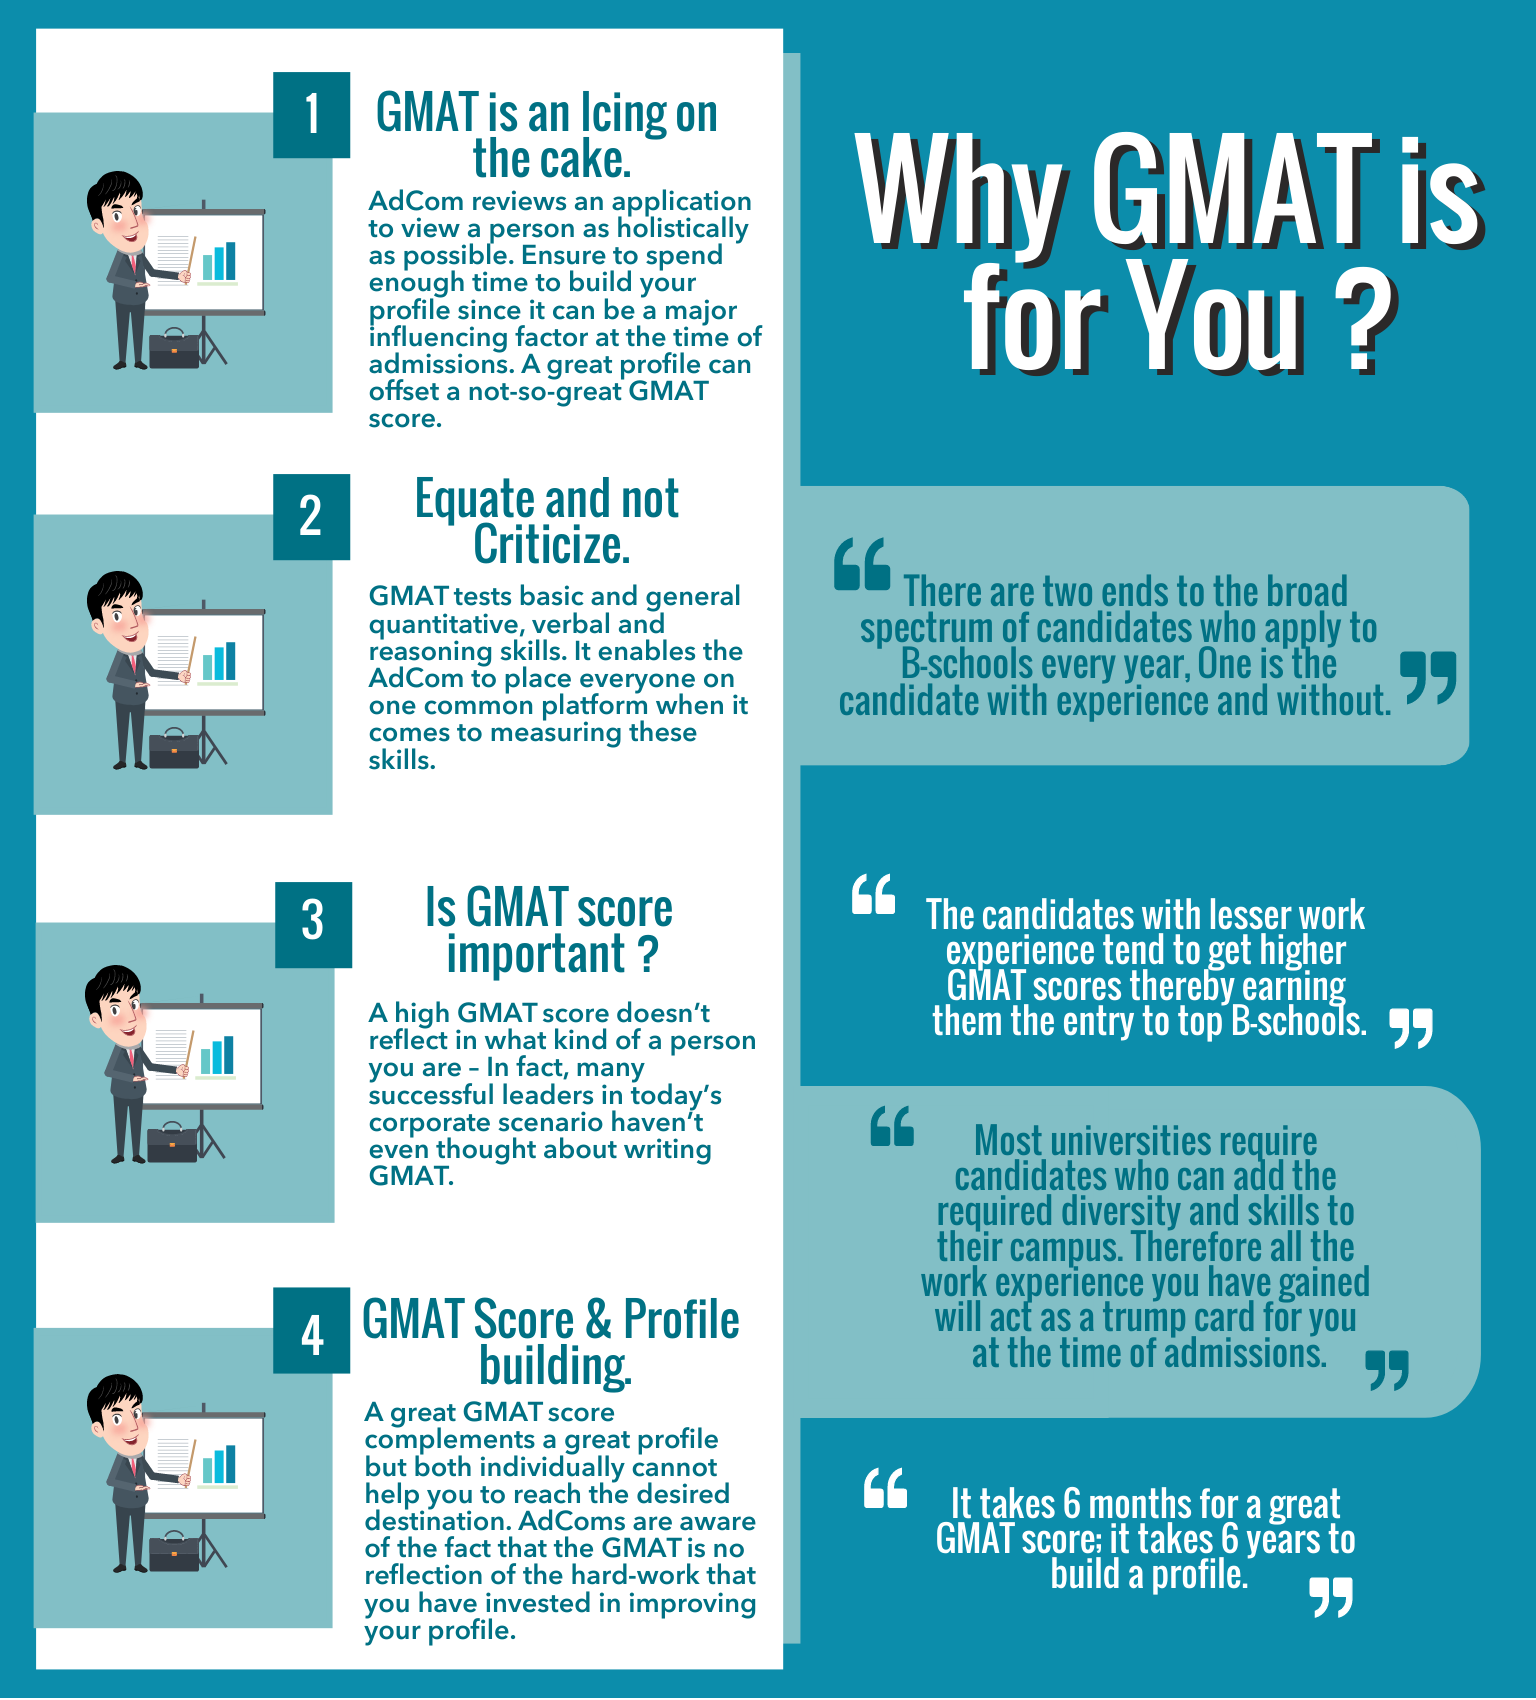 4 Reasons Why GMAT is for You